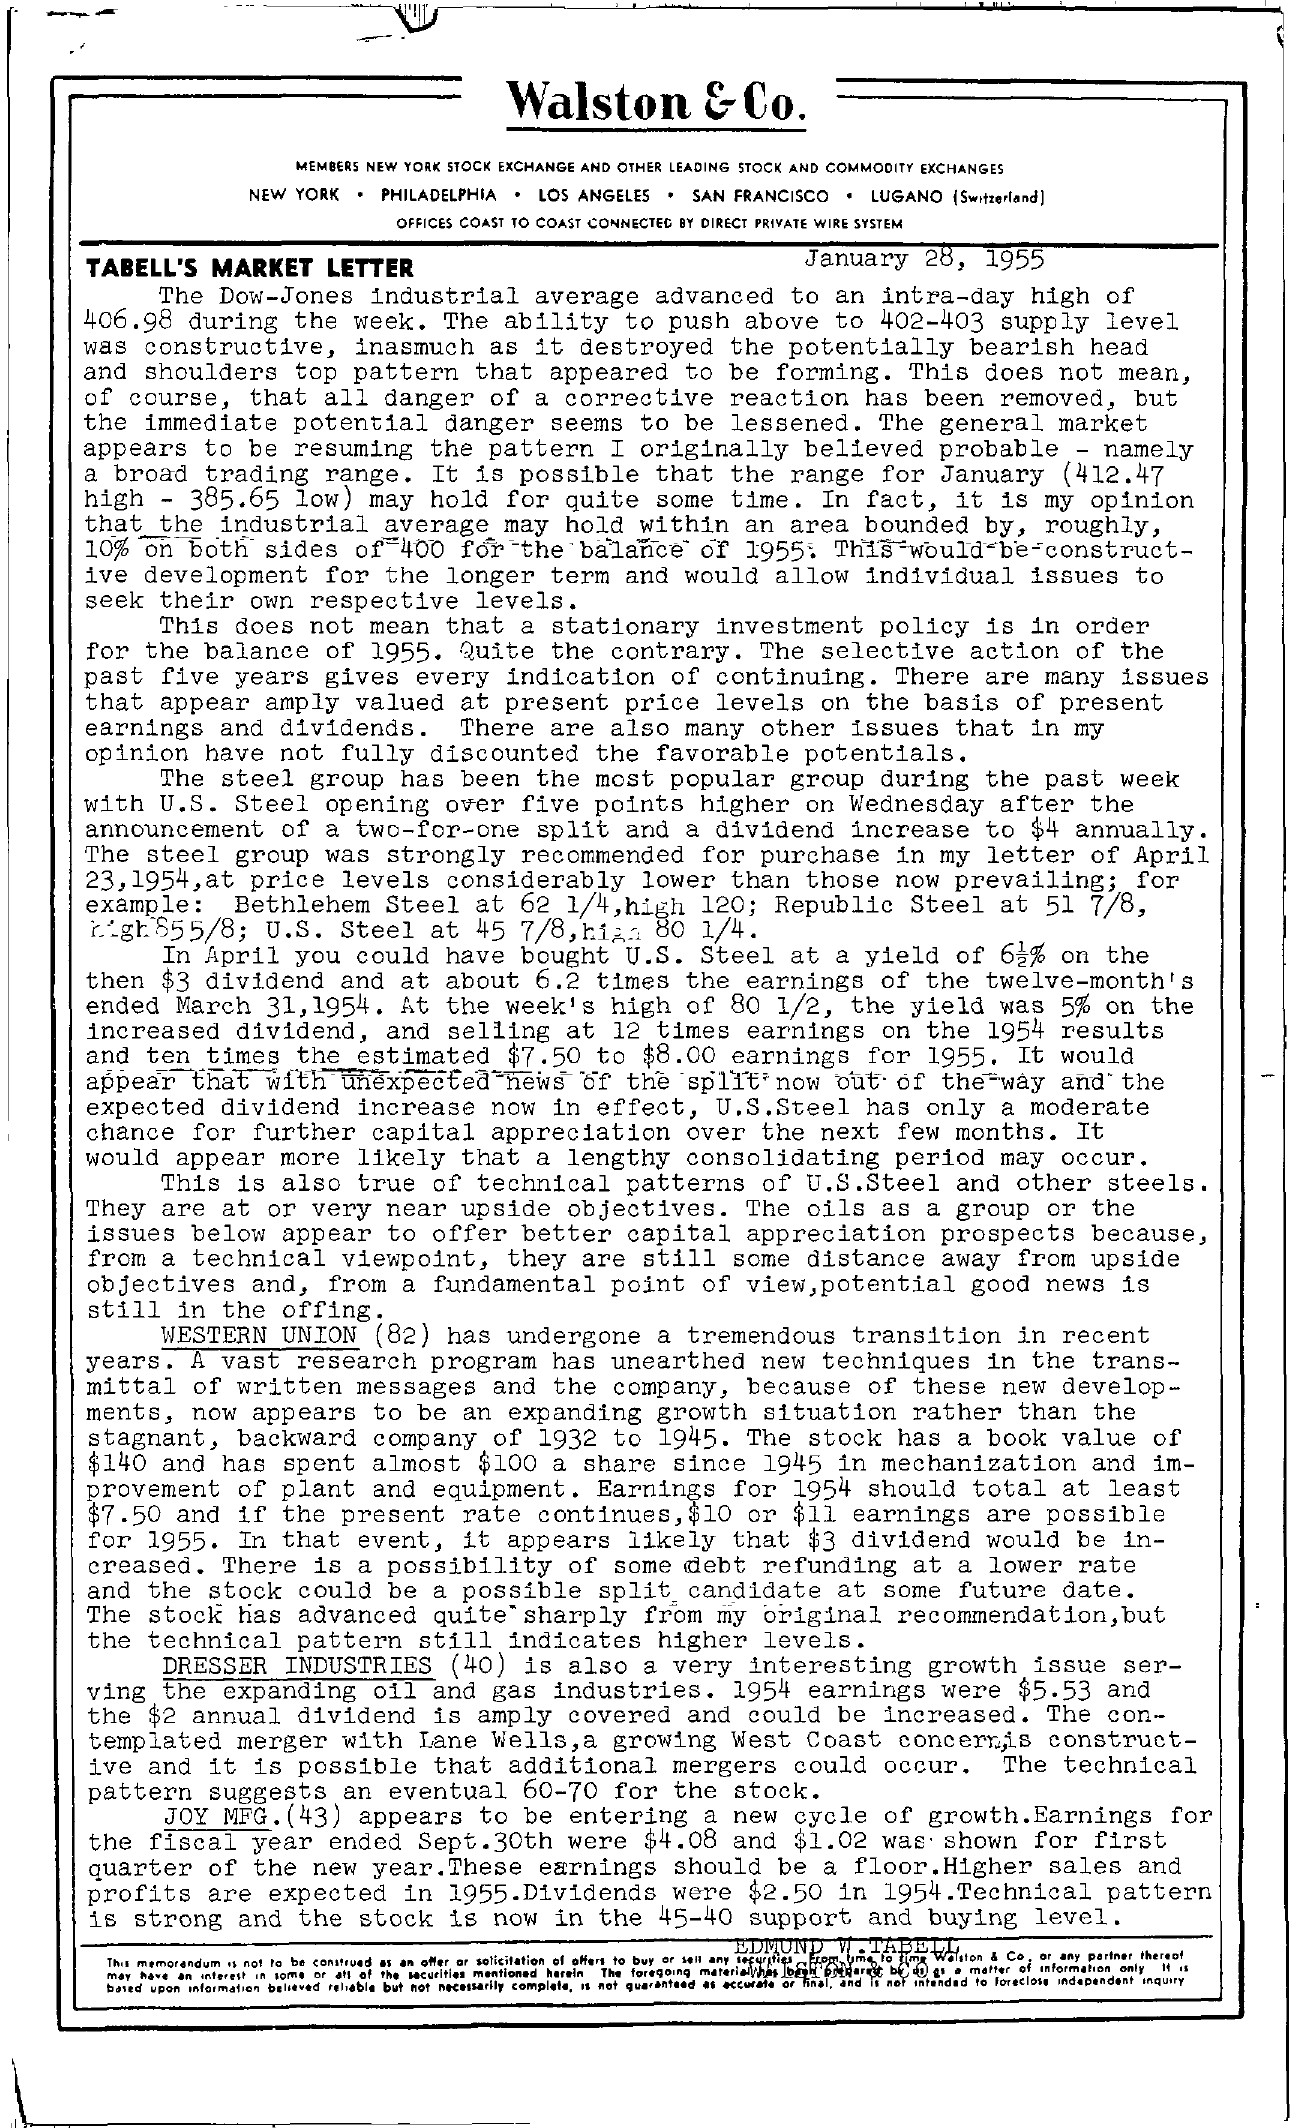 Tabell's Market Letter - January 28, 1955 page 1